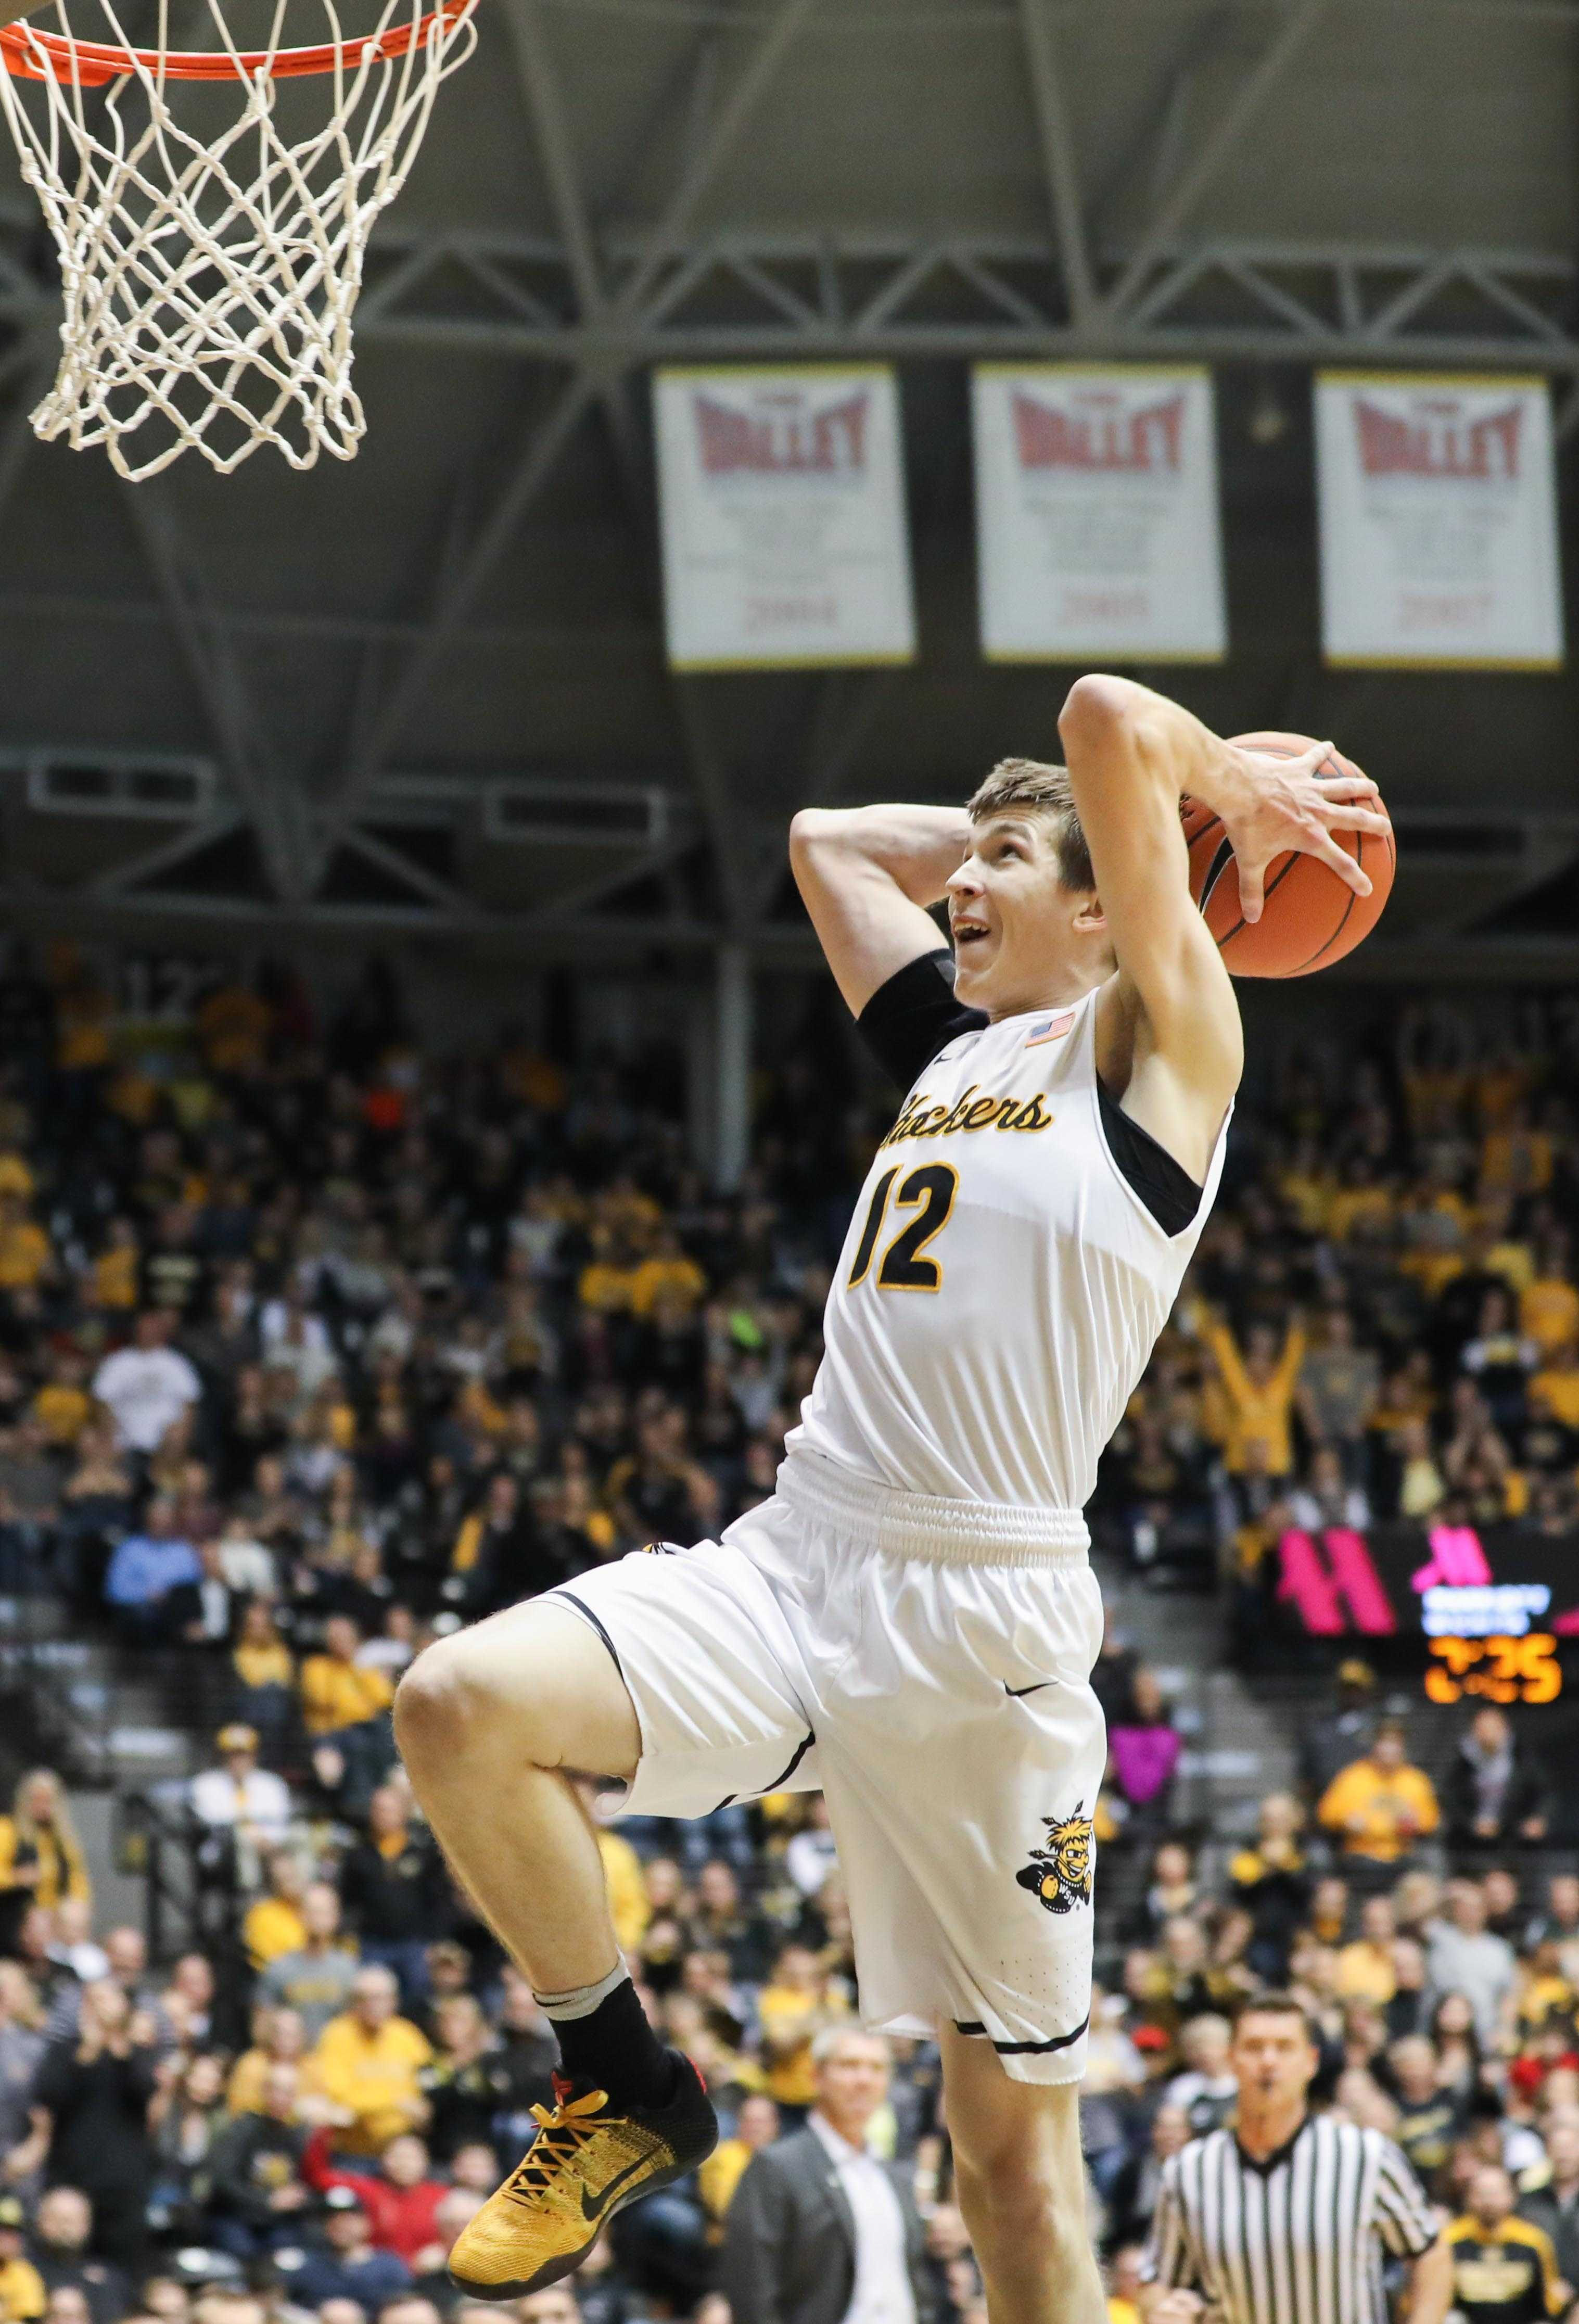 Wichita+State+guard+Austin+Reaves+goes+for+a+dunk+after+a+success+steal+against+the+Indiana+Sycamores+in+the+first+half+at+Koch+Arena.+%28Jan.+21%2C+2017%29